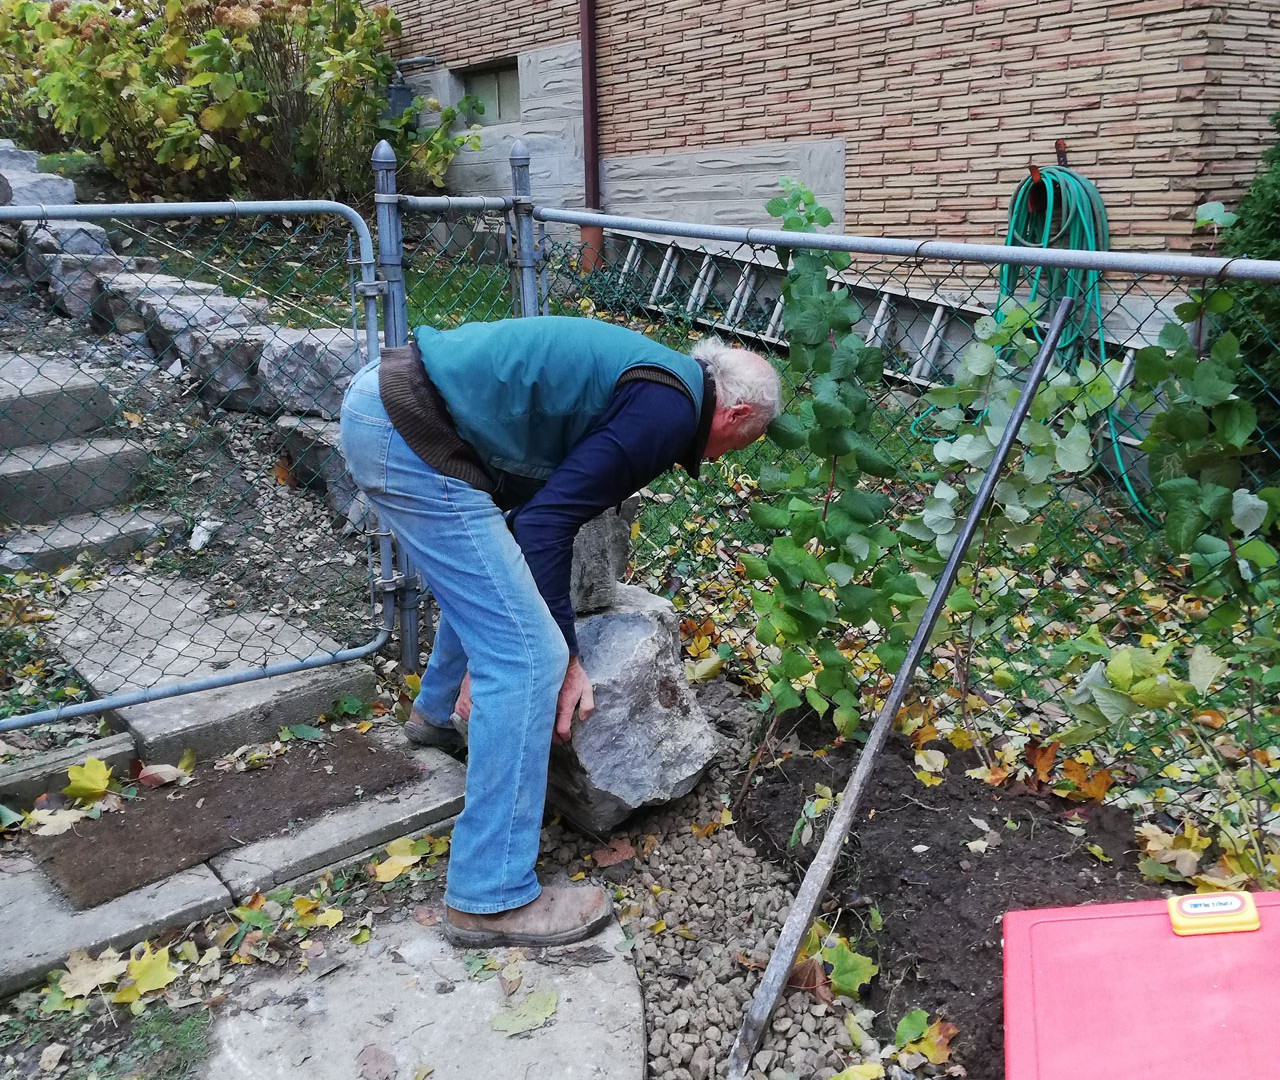 Martin moving stones in place to continu